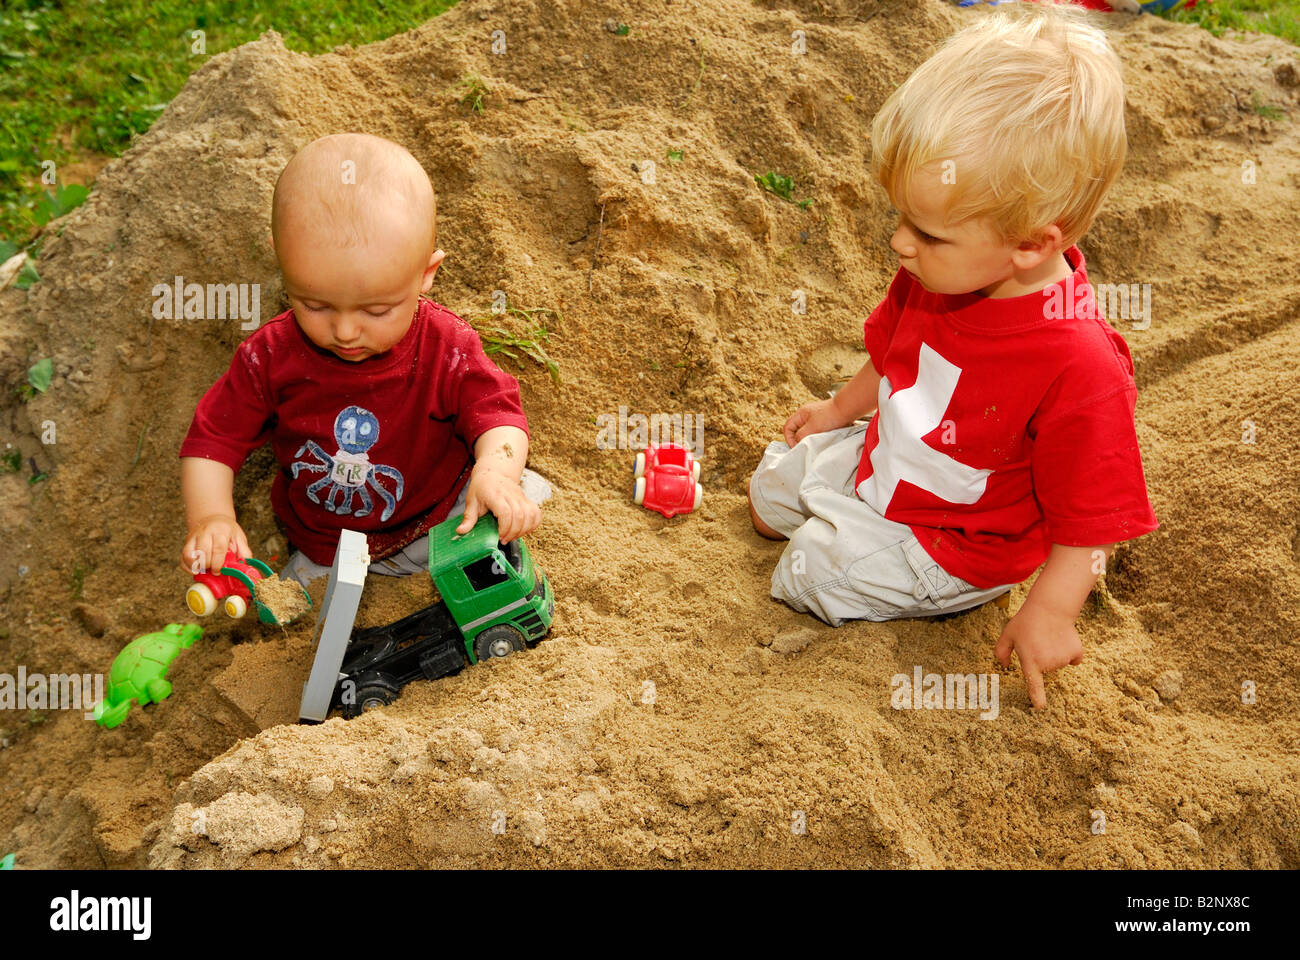 Baby Blonde Boy Boys In Sand Pit Playing Toys Playground 1 2 3 Years